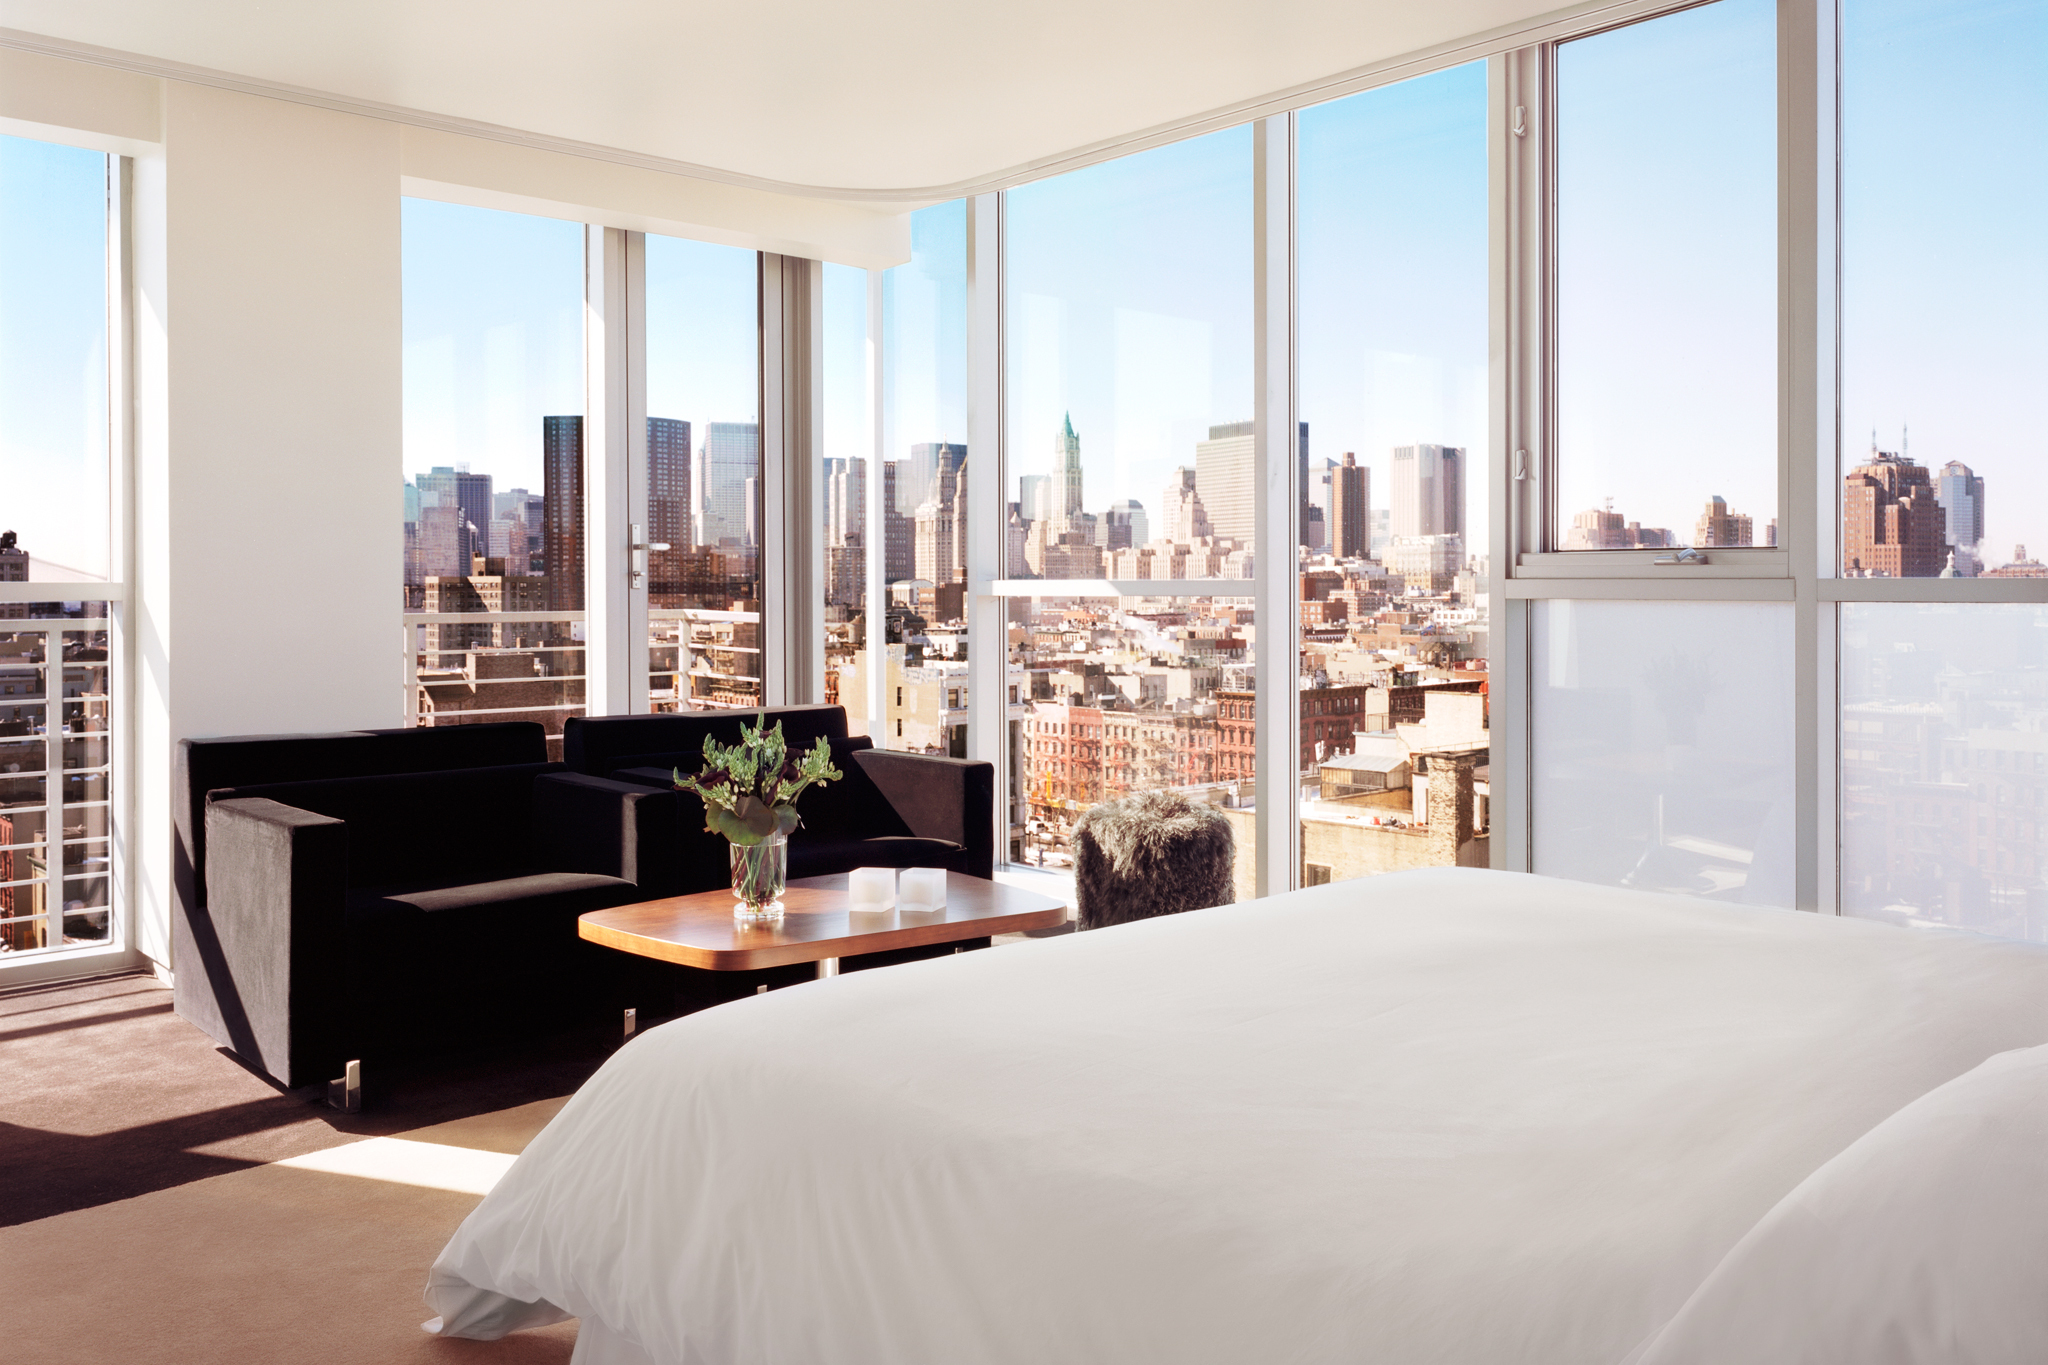 Rooms: Best Rooms With A View: Get A Private Window On The NYC